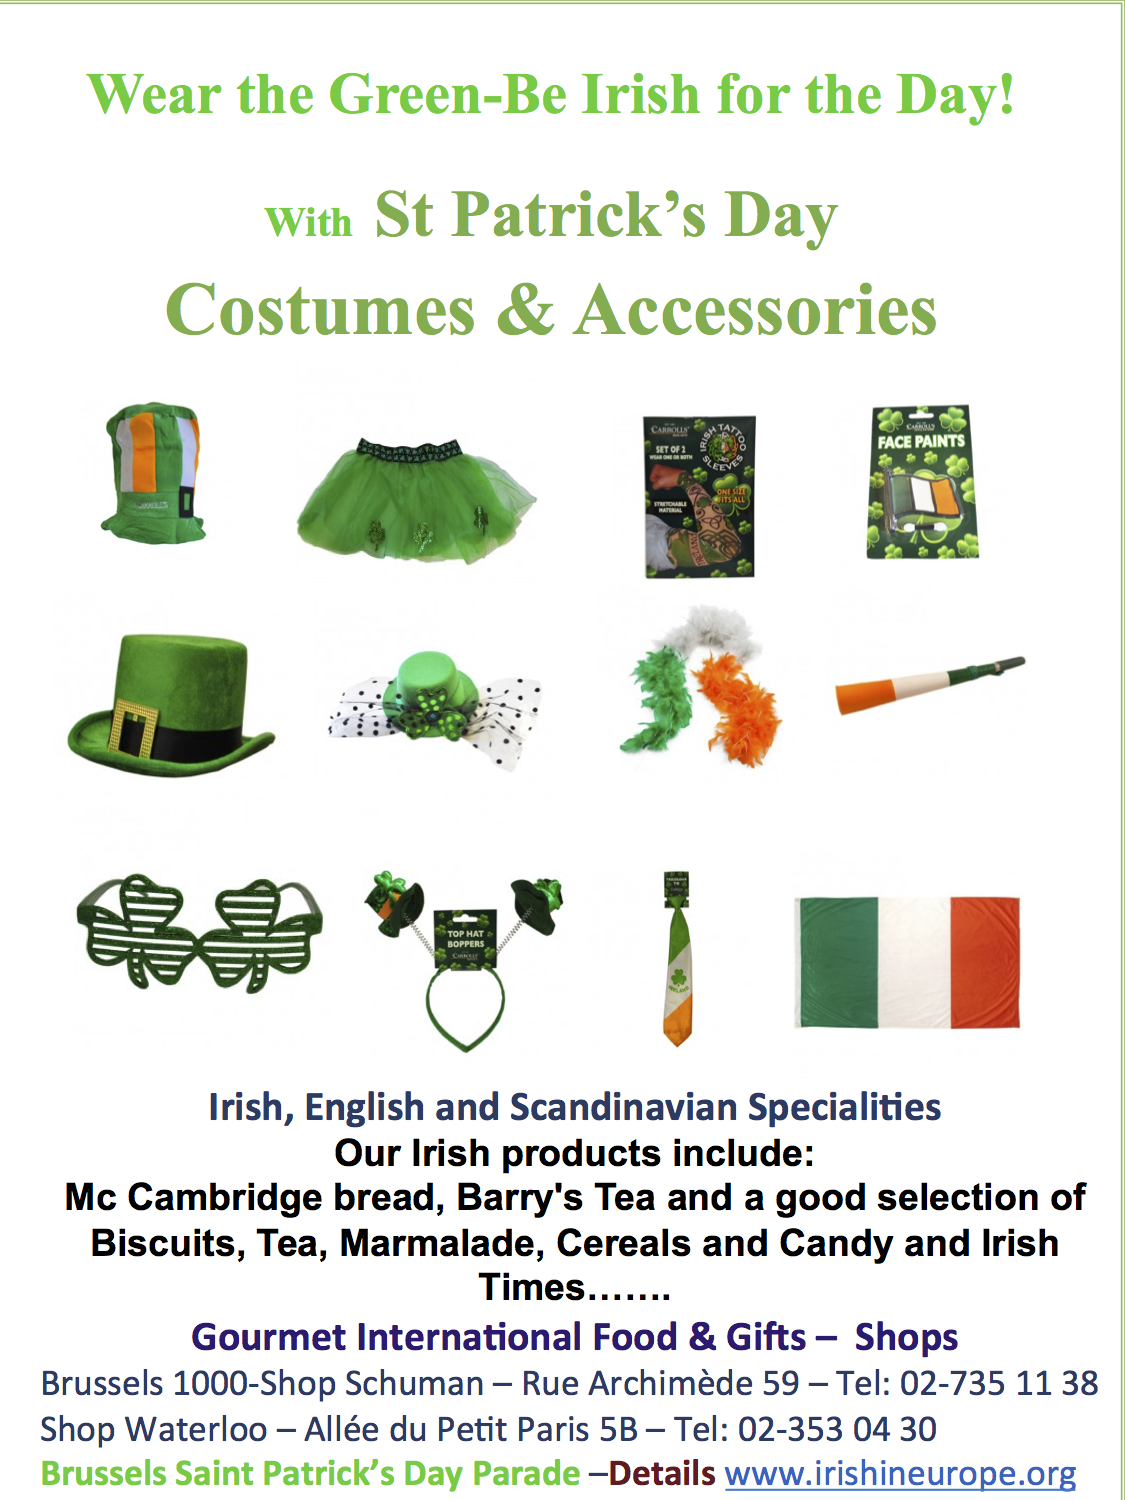 St Patrick 2015  costumes and Accessories